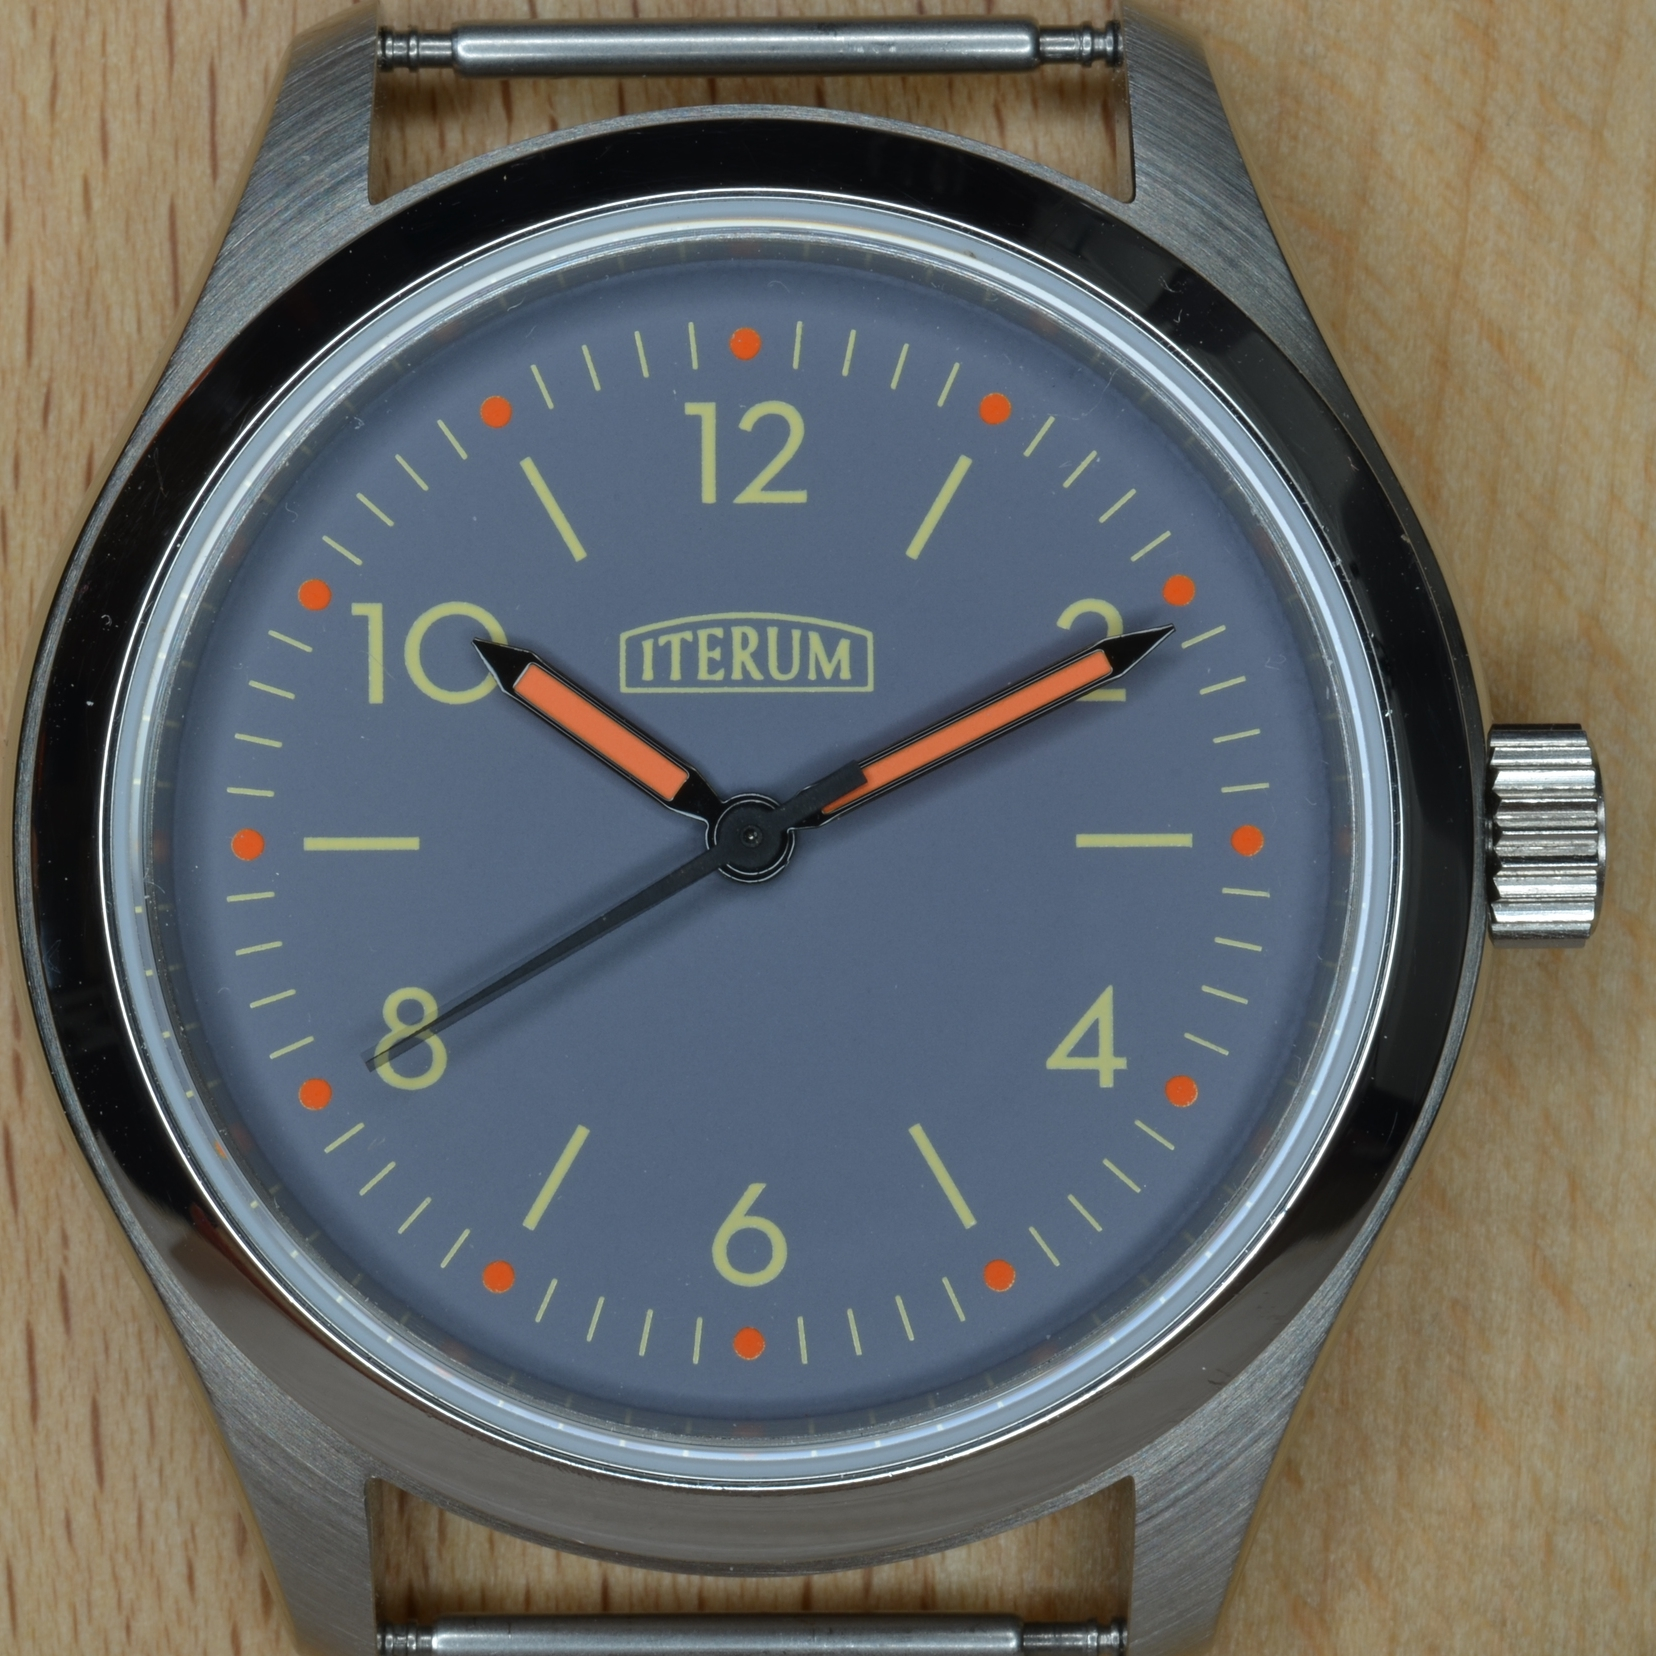 This dial has a blue-gray background and orange hour markers.